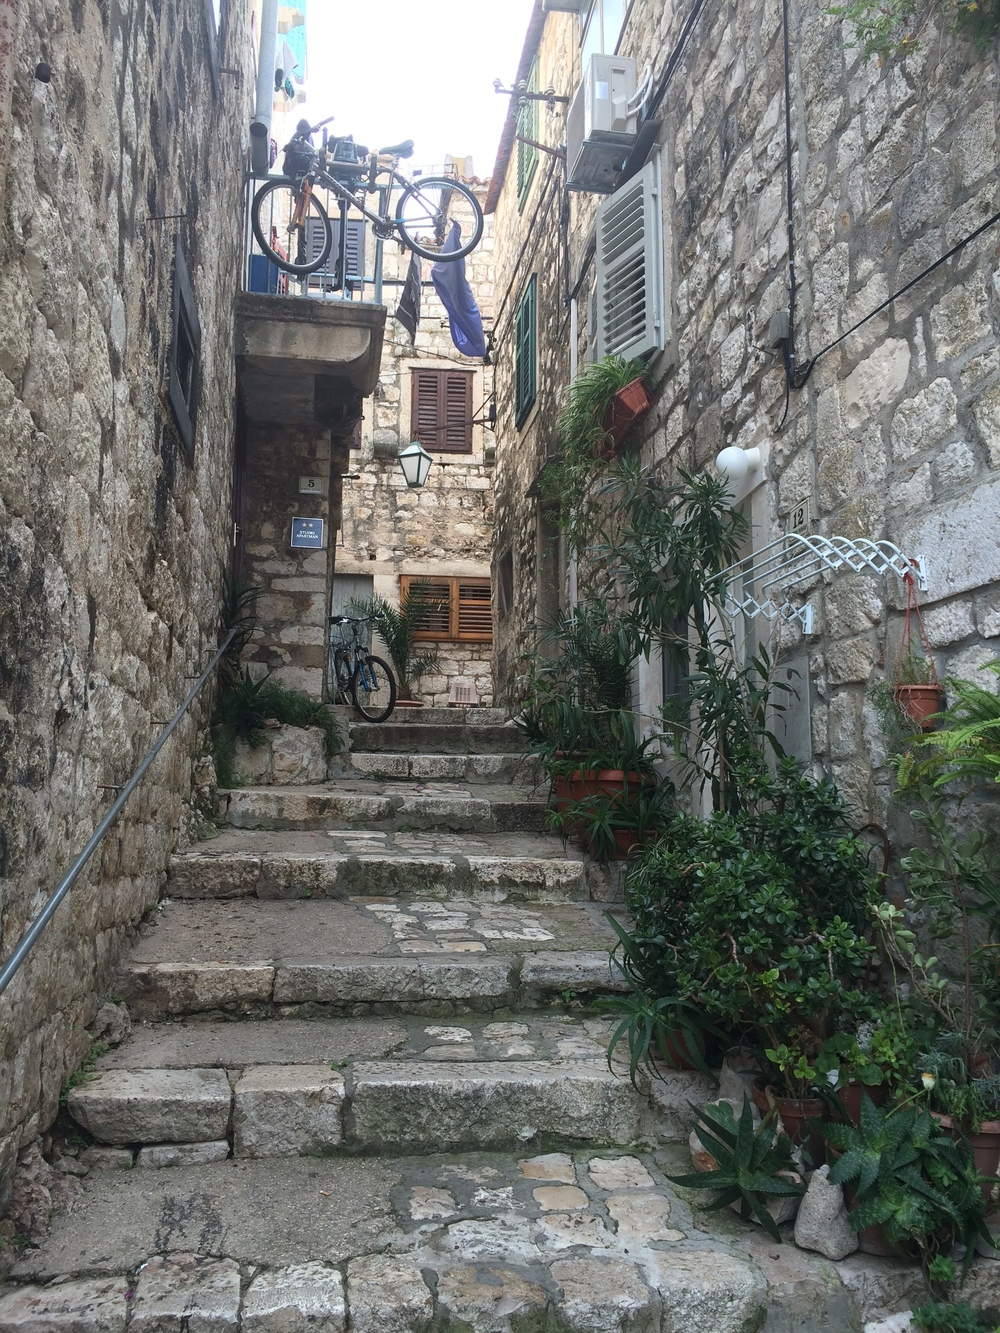 The tranquil streets of Hvar.